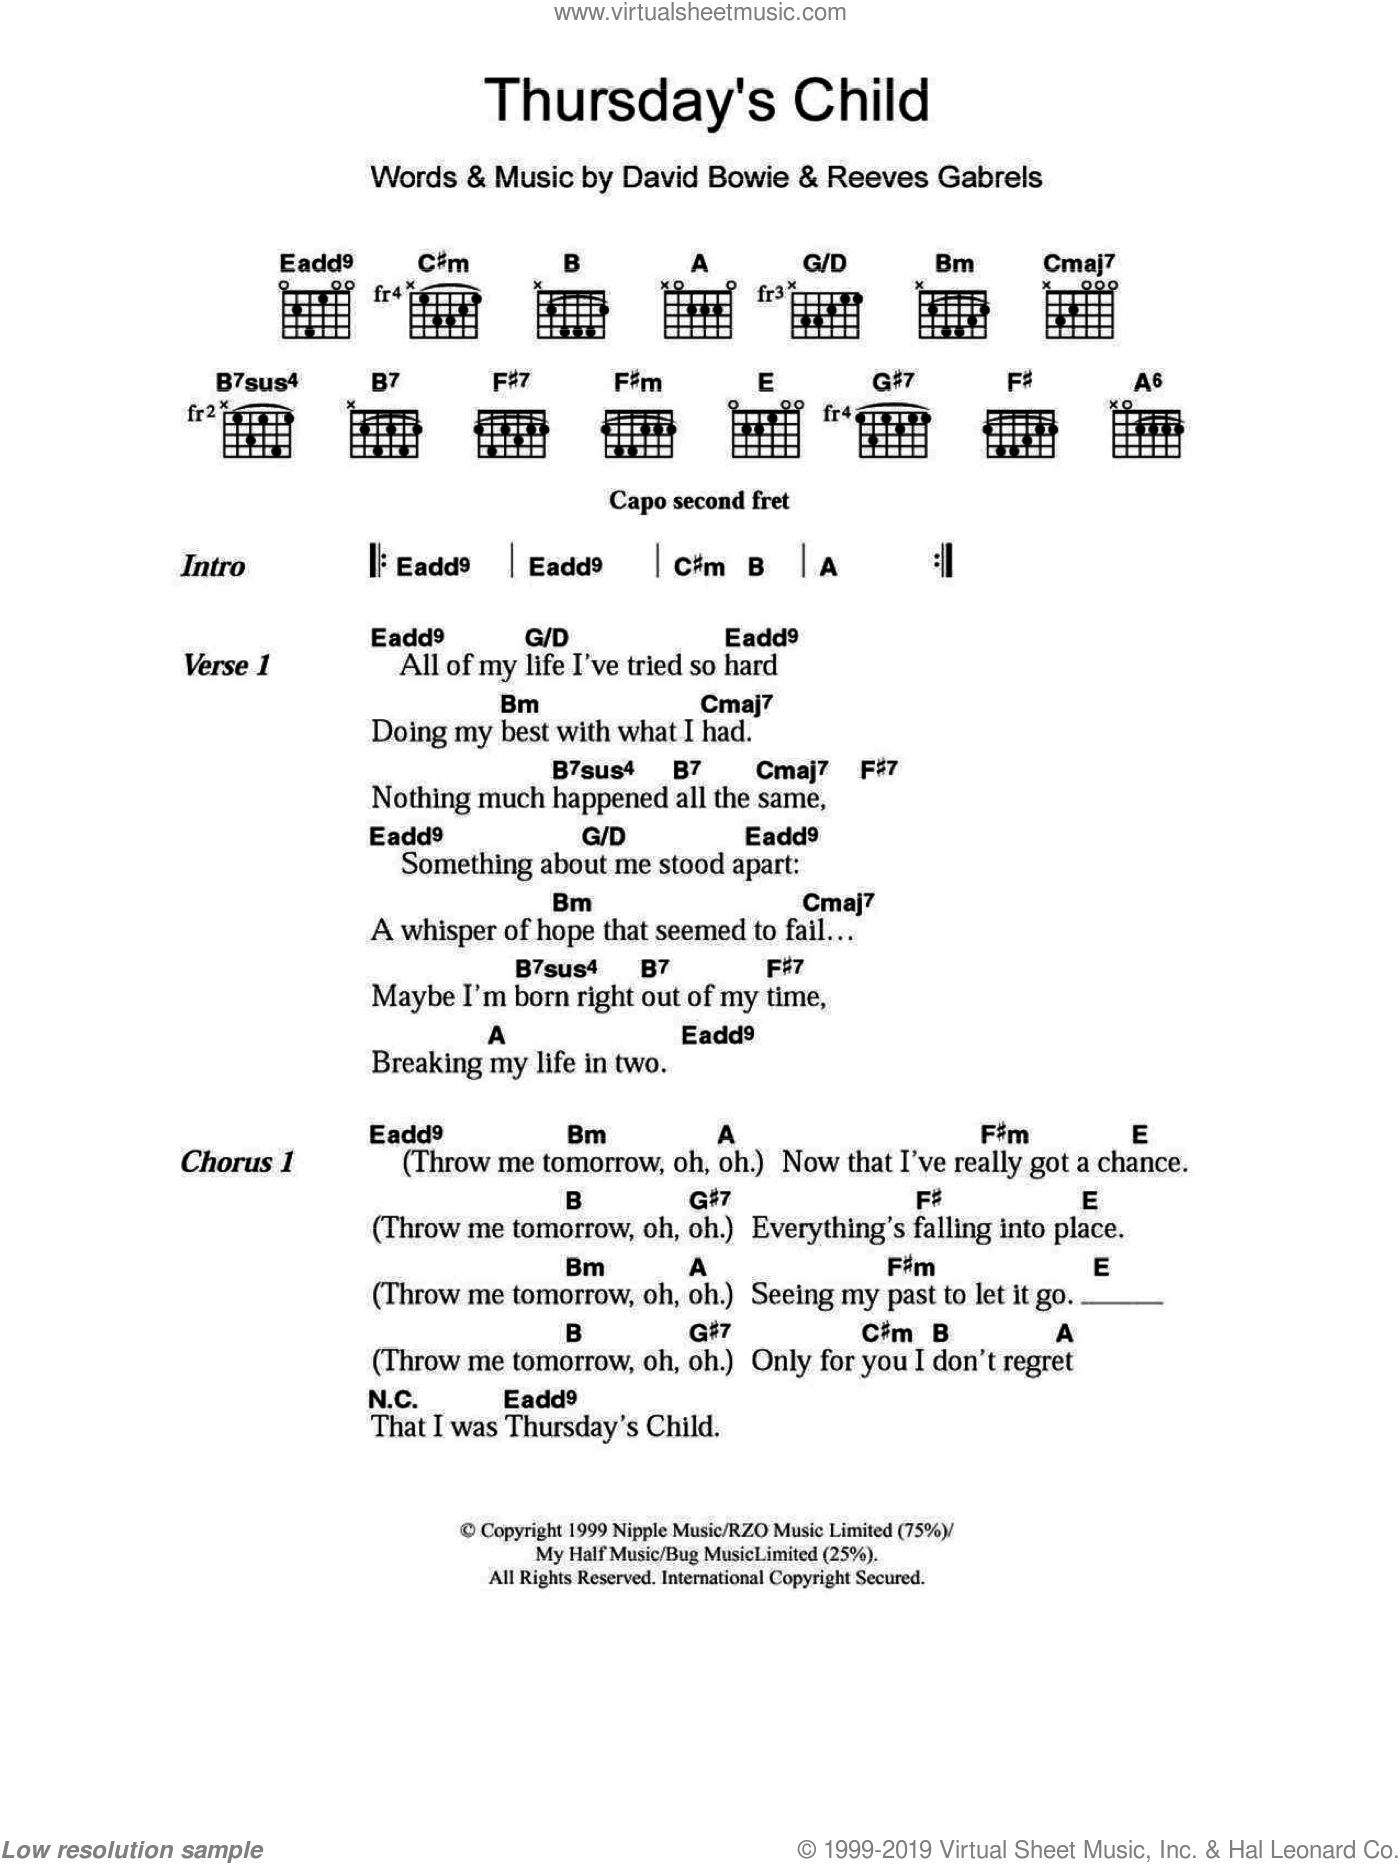 Bowie - Thursday\'s Child sheet music for guitar (chords) [PDF]